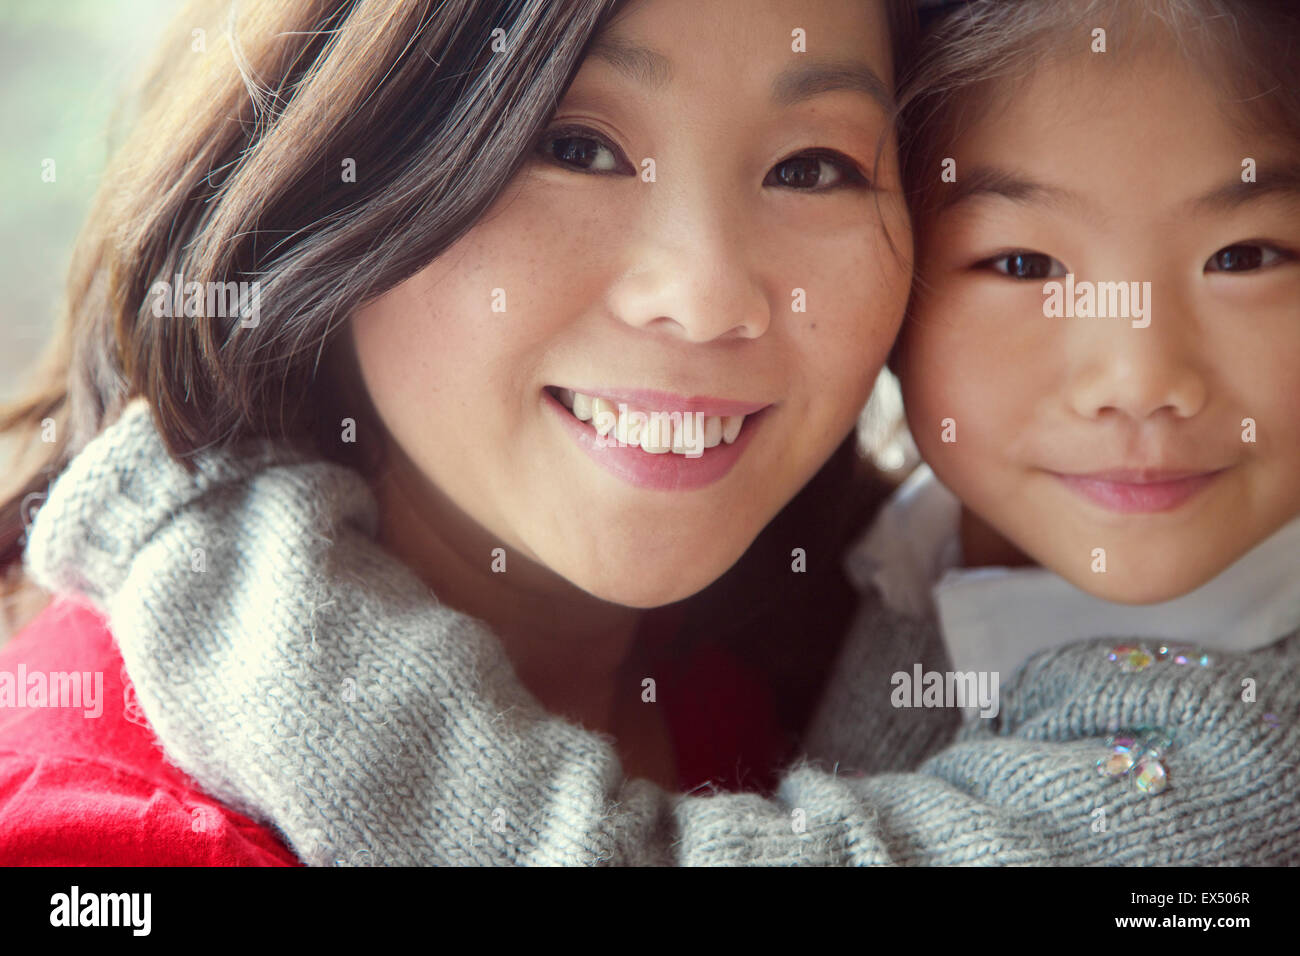 Mother and Daughter Embracing, Close-up view Stock Photo